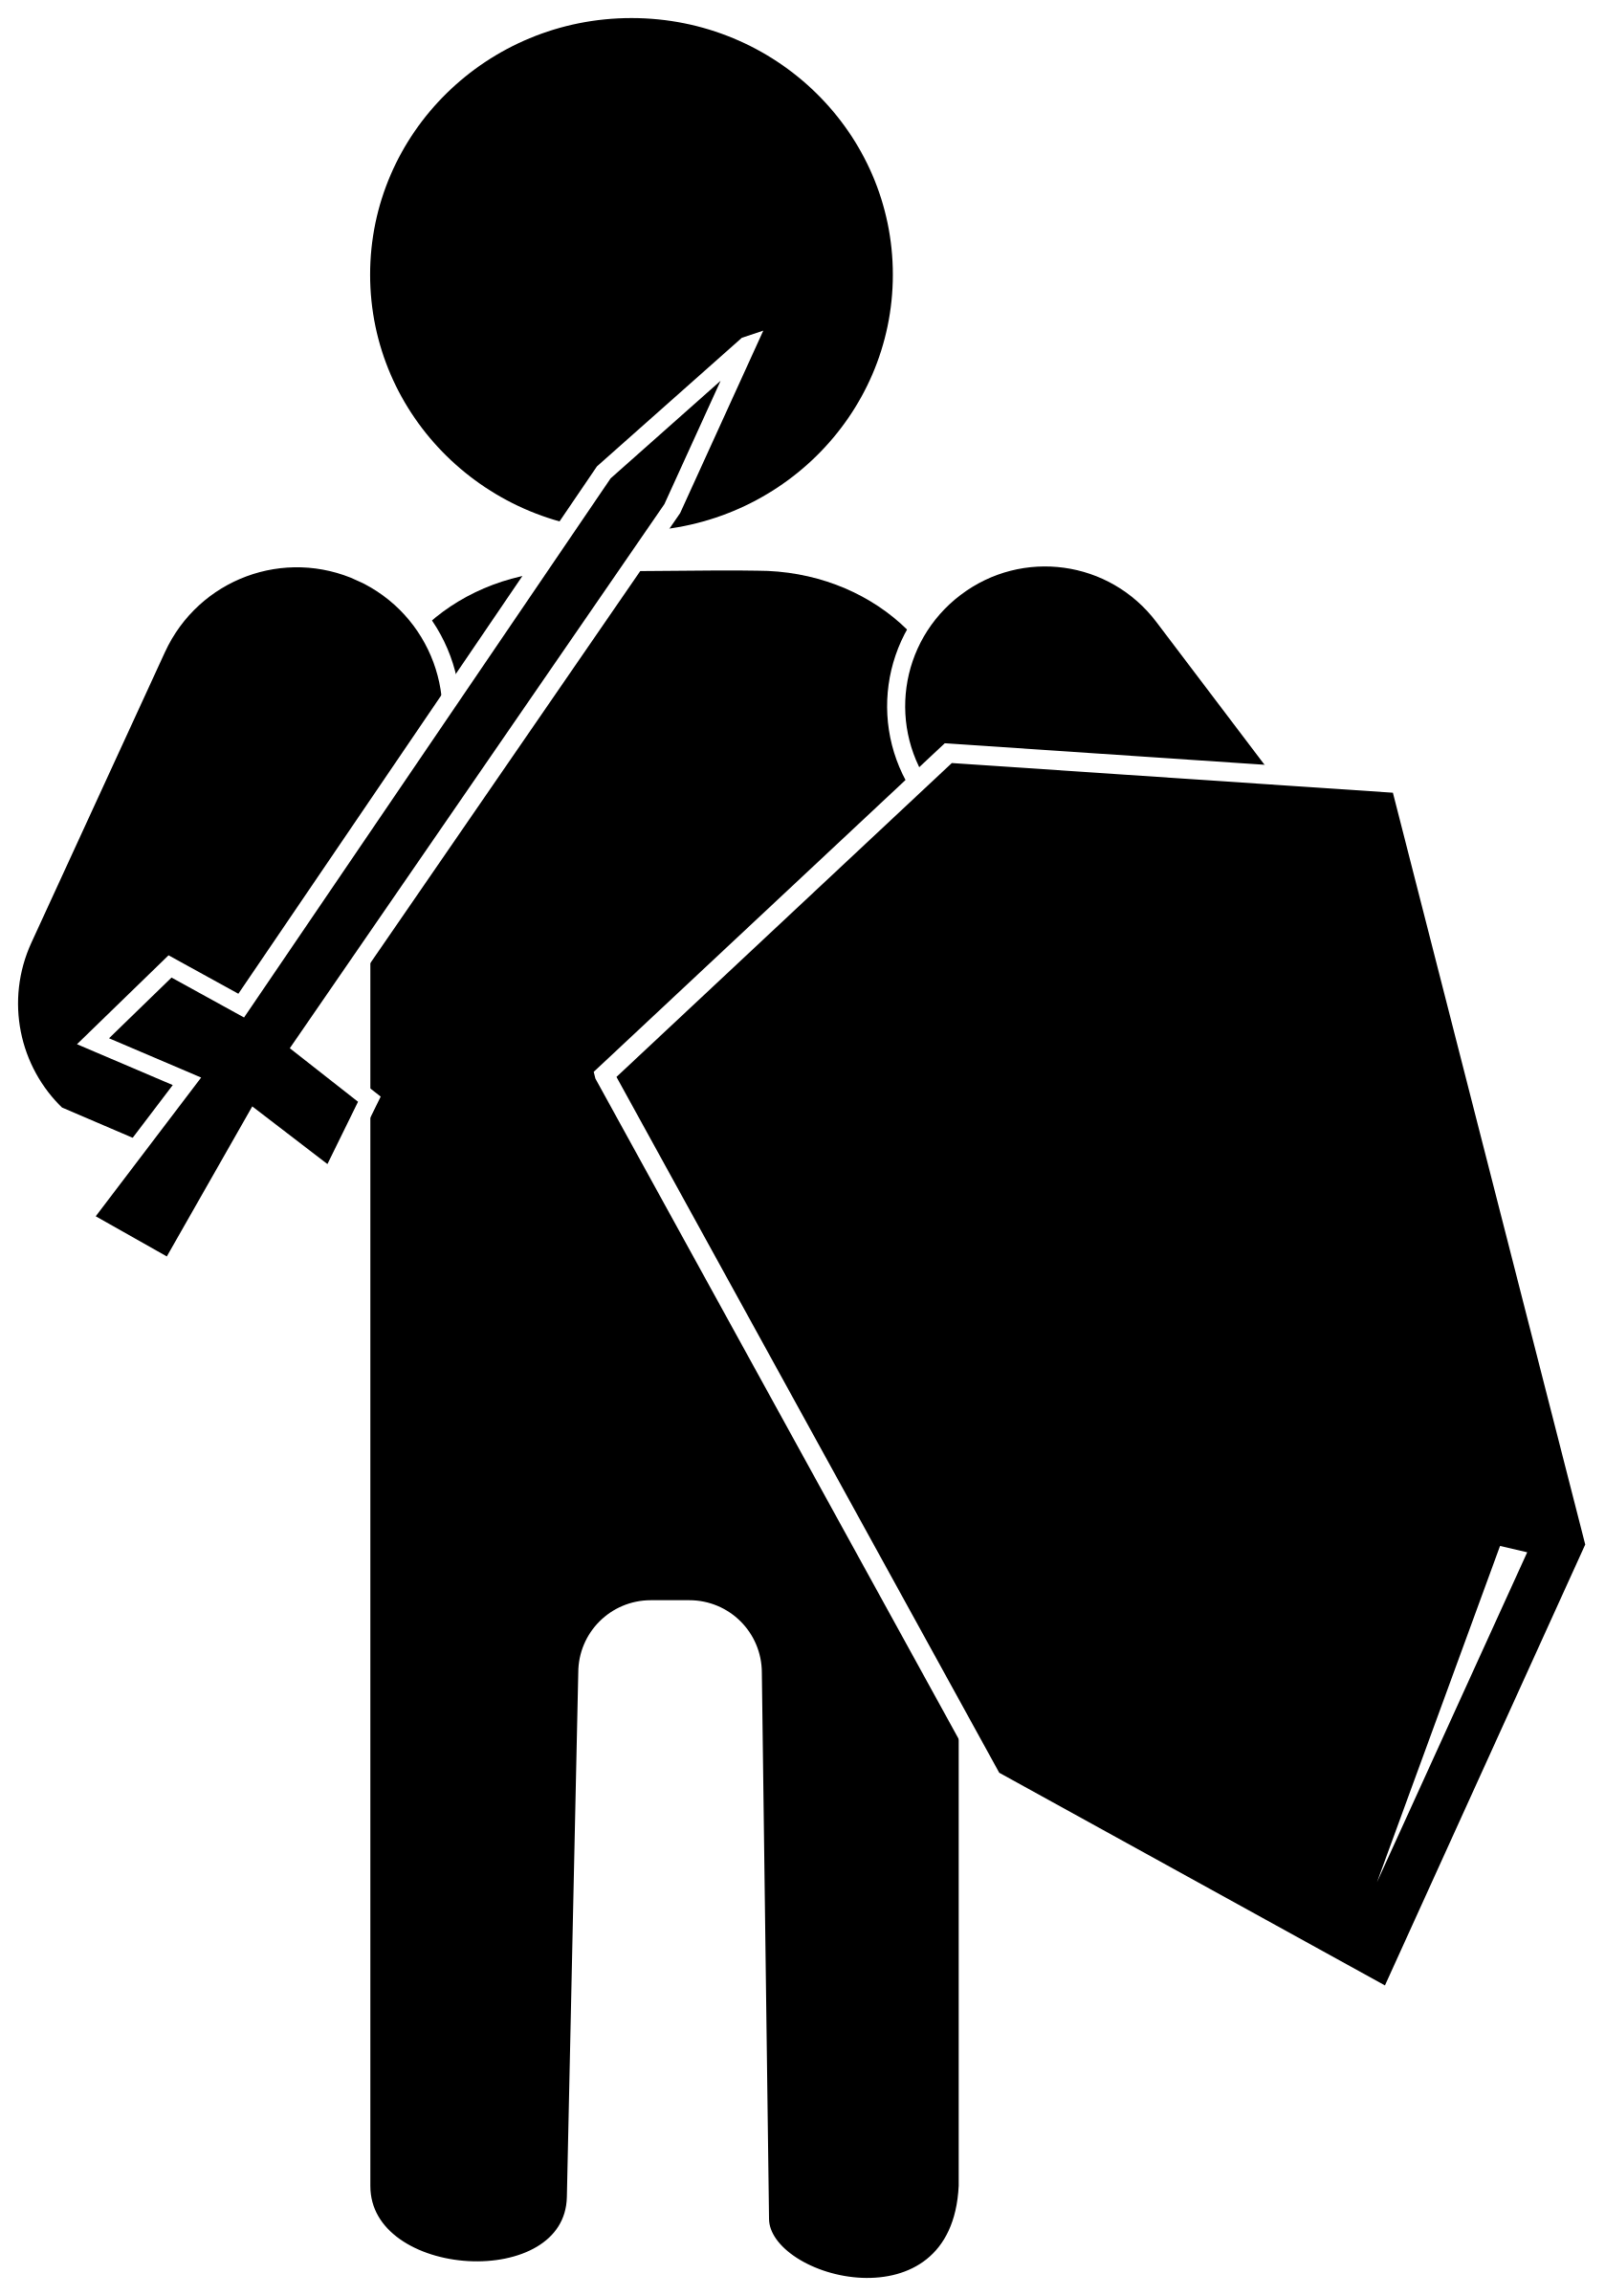 Silhouette clipart soldier. Big image png